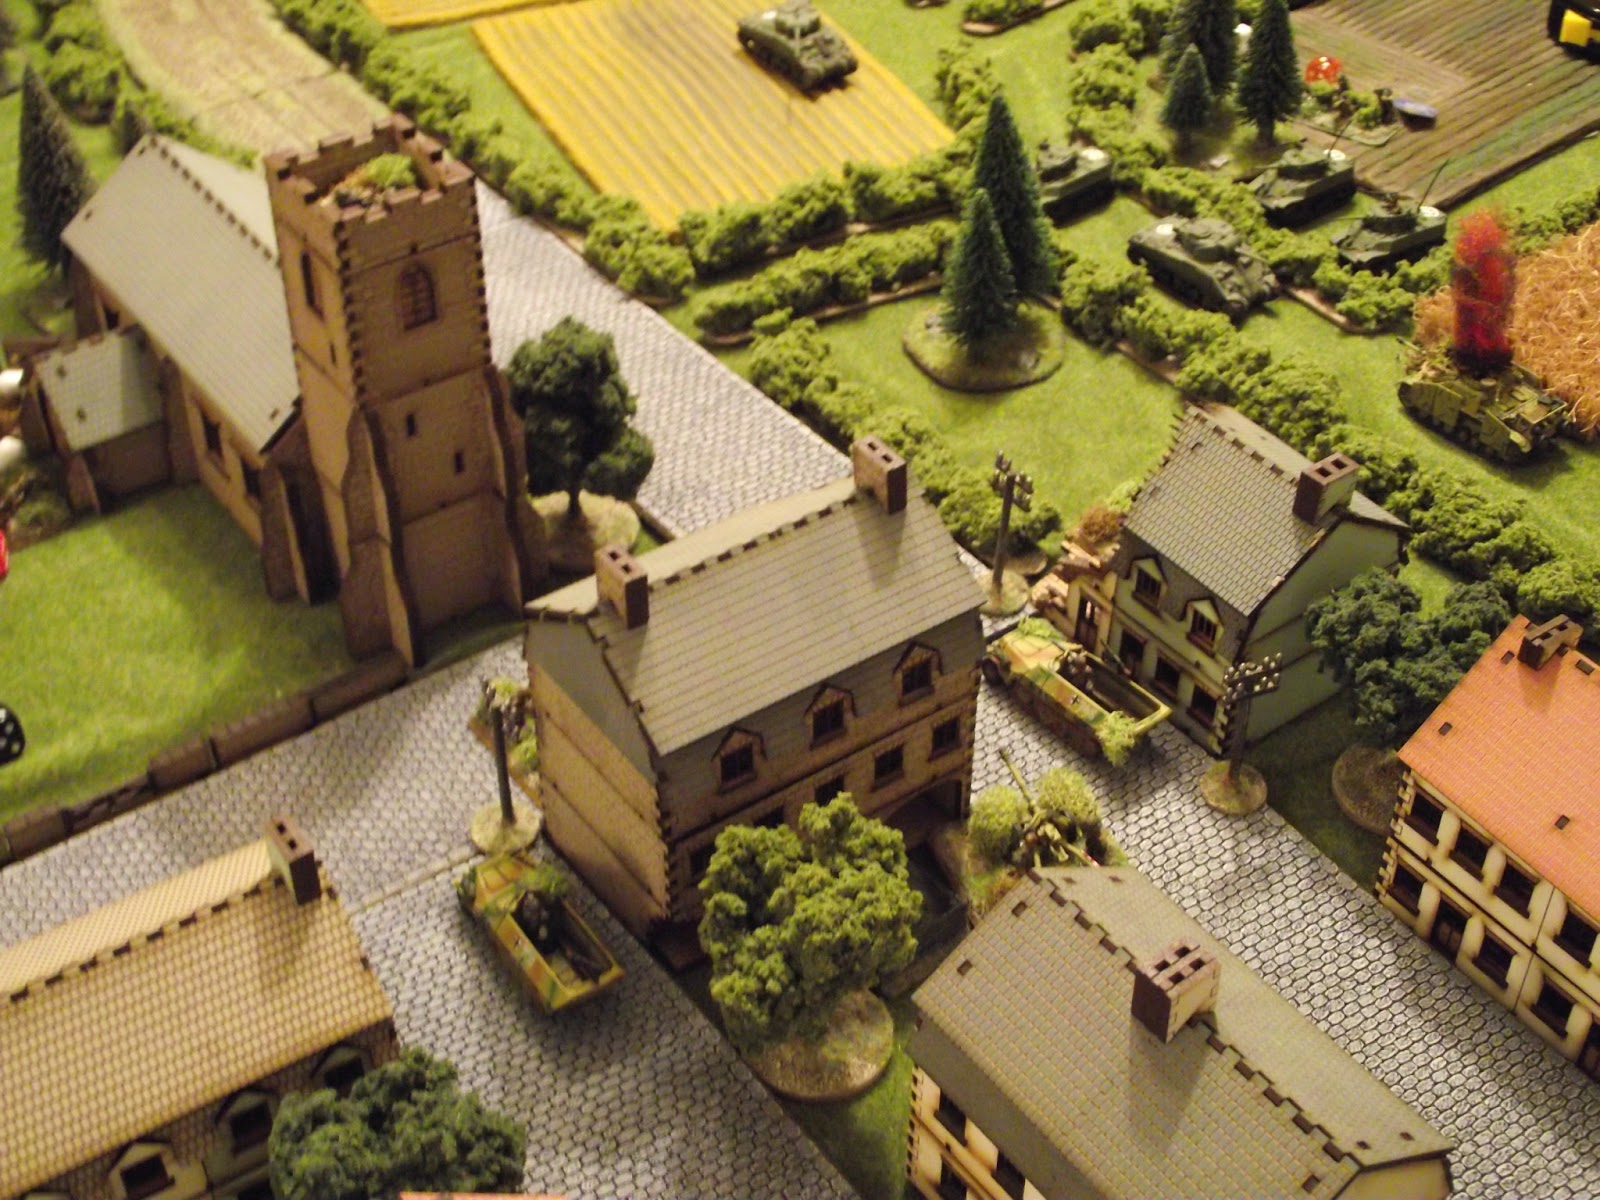 Another German squad enters the Hotel across from the church and sets up on the second floor.